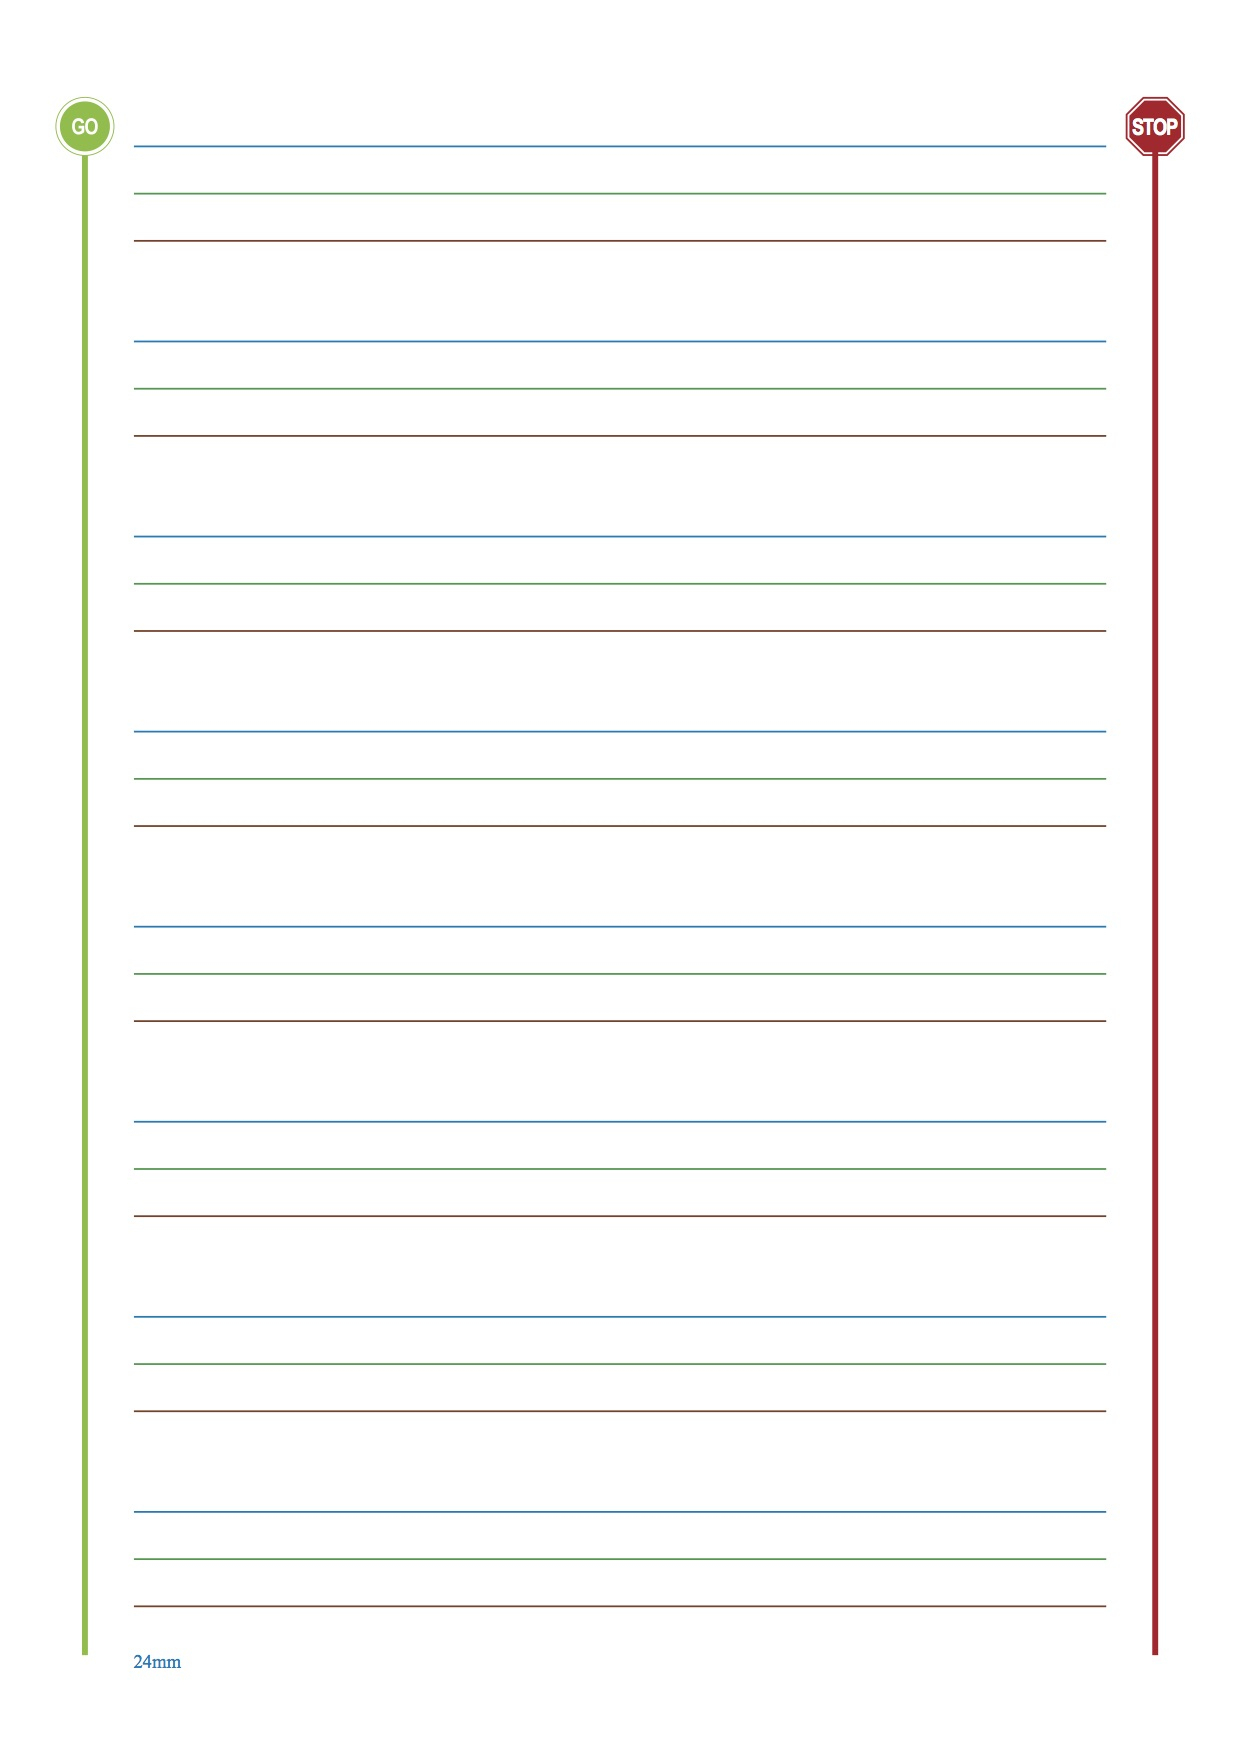 Inspirational Free Printable Lined Paper For Kids Writing | Chart - Free Printable Lined Paper